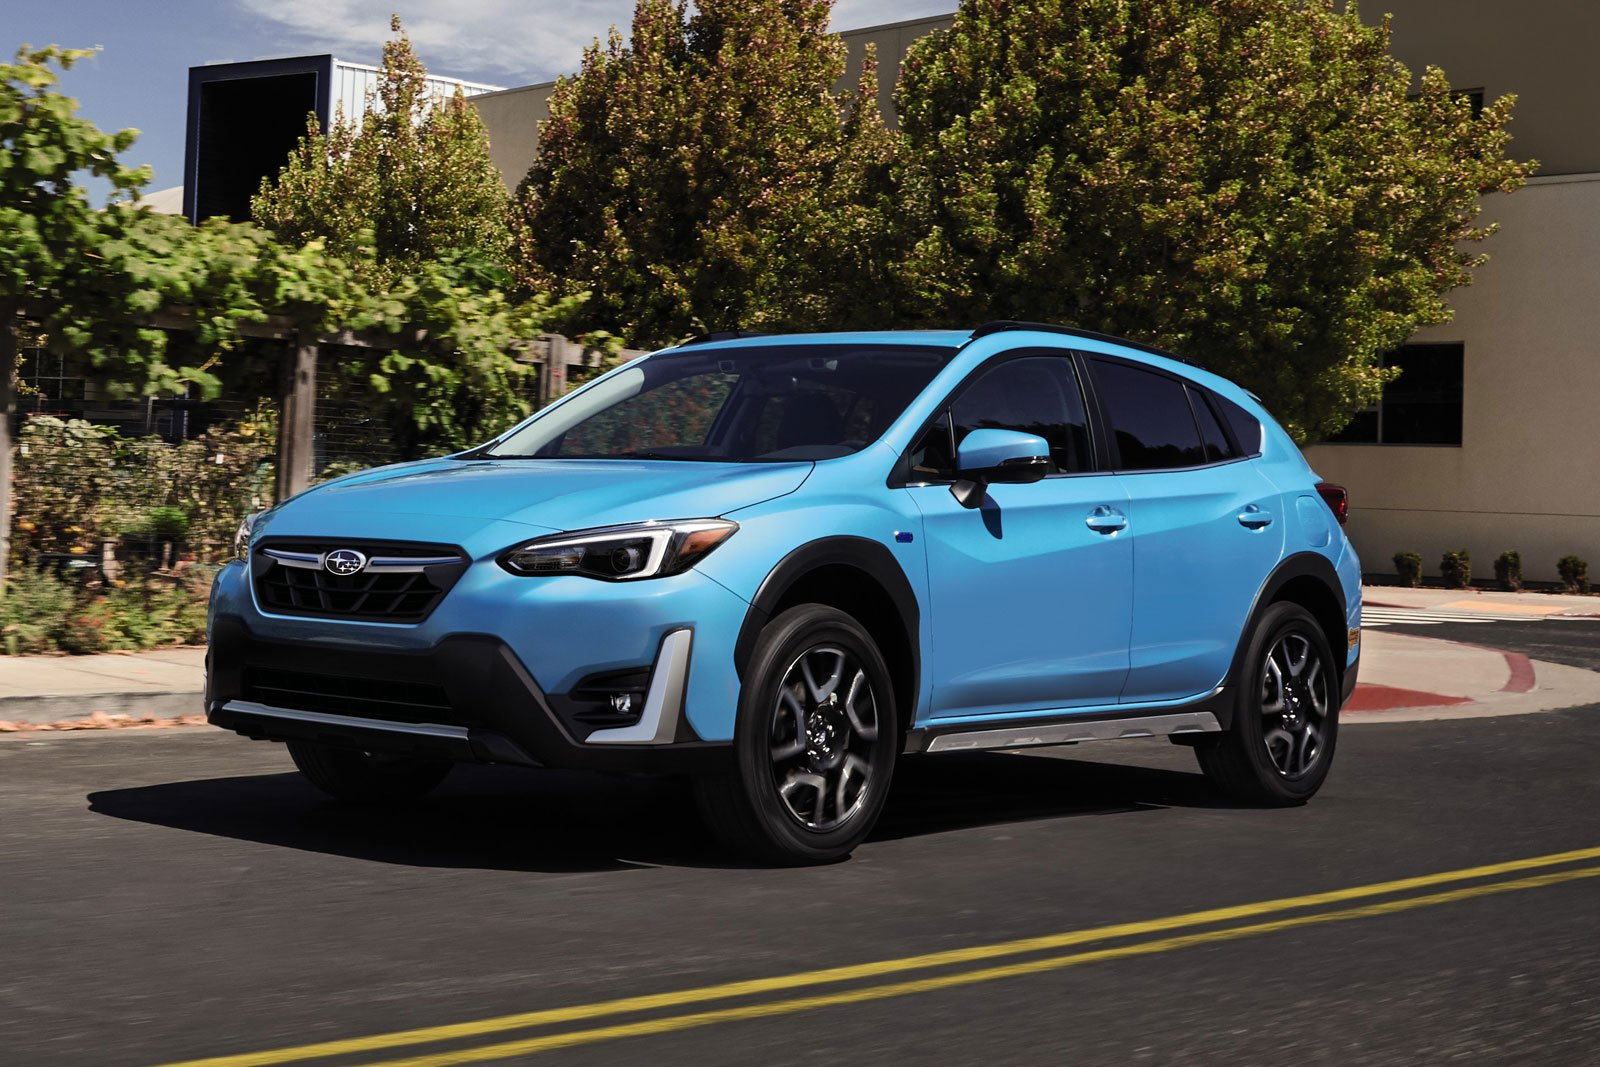 subaru 2021 lineup: models and changes overview - motor